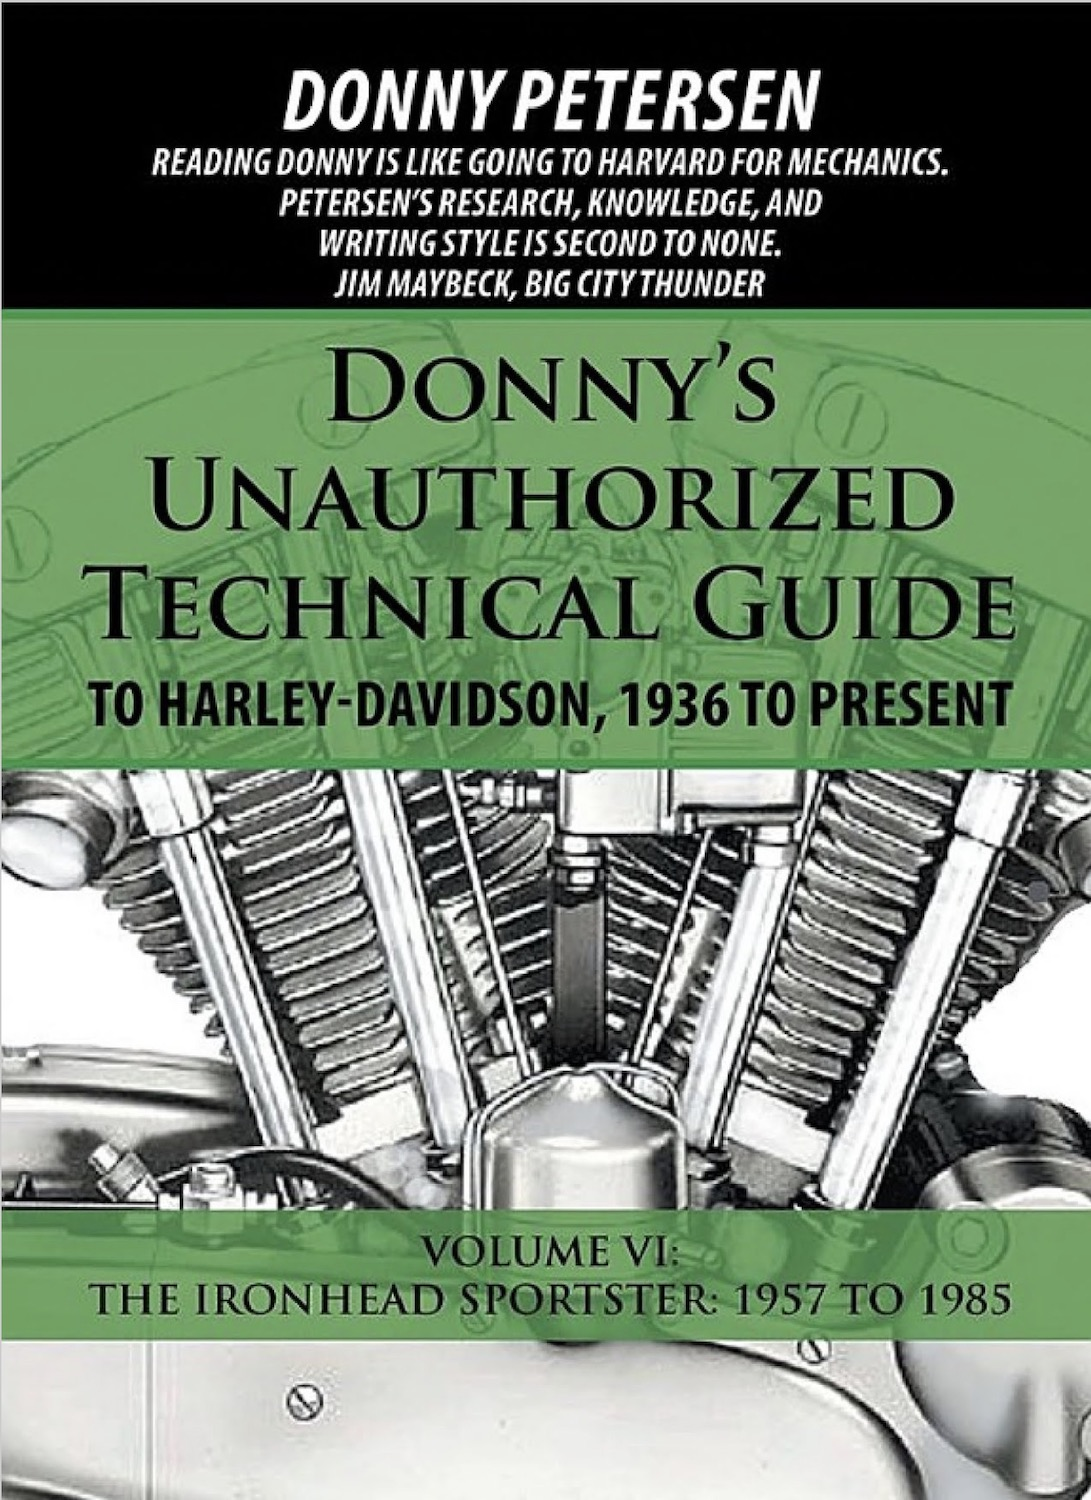 Donny's Unauthorized Technical Guide